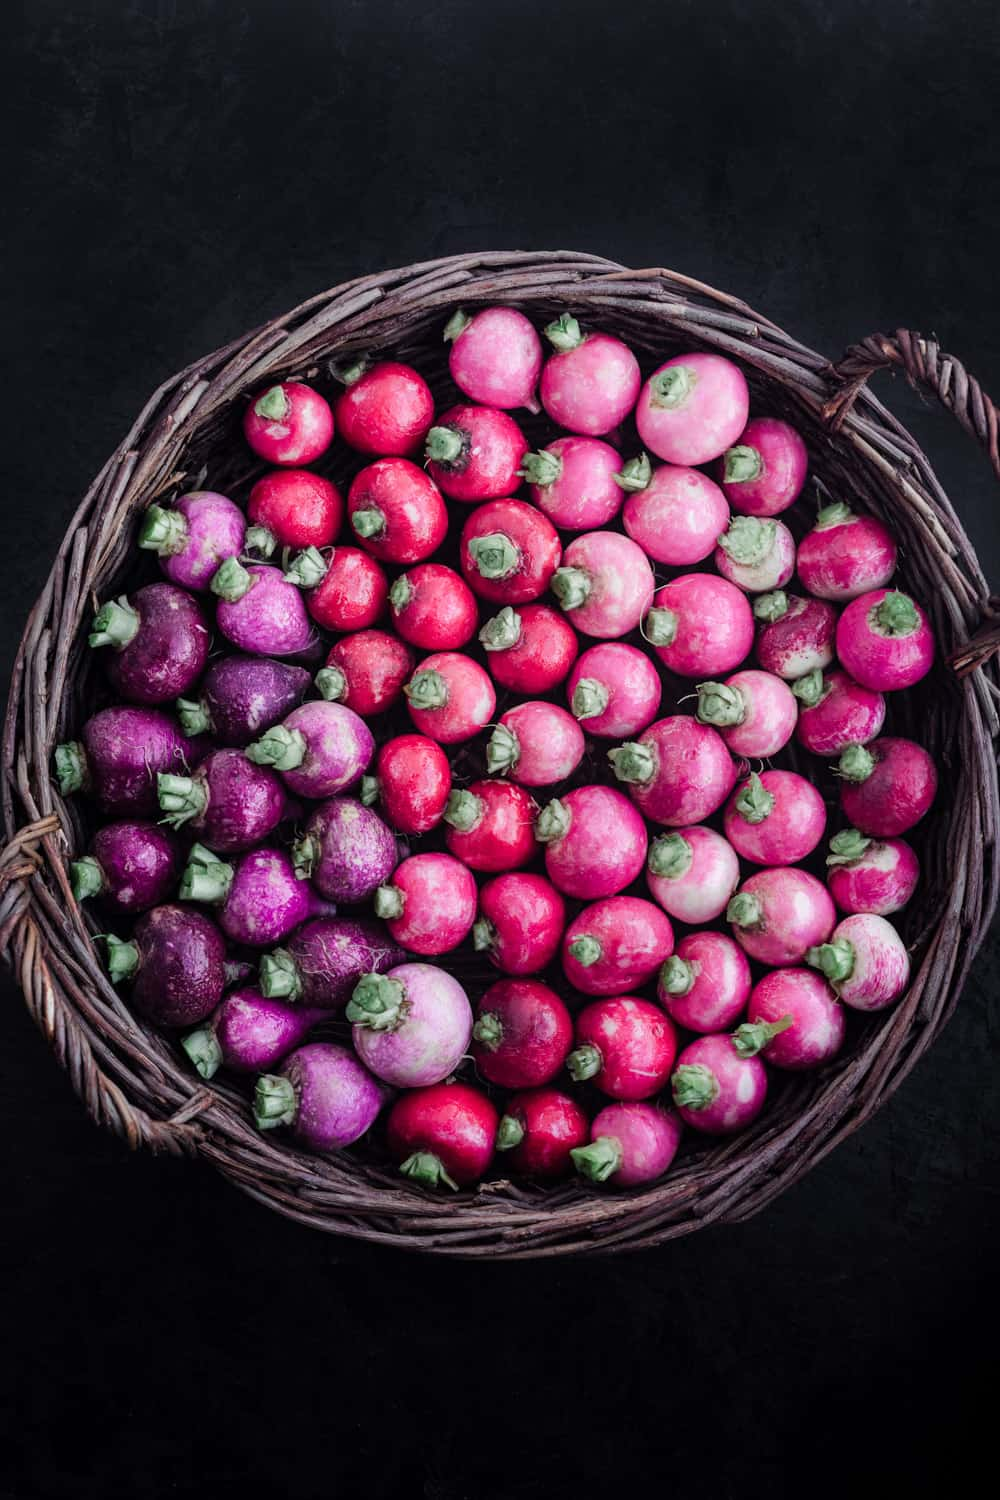 A basket filled with pink and purple radishes; overhead shot on a black background.